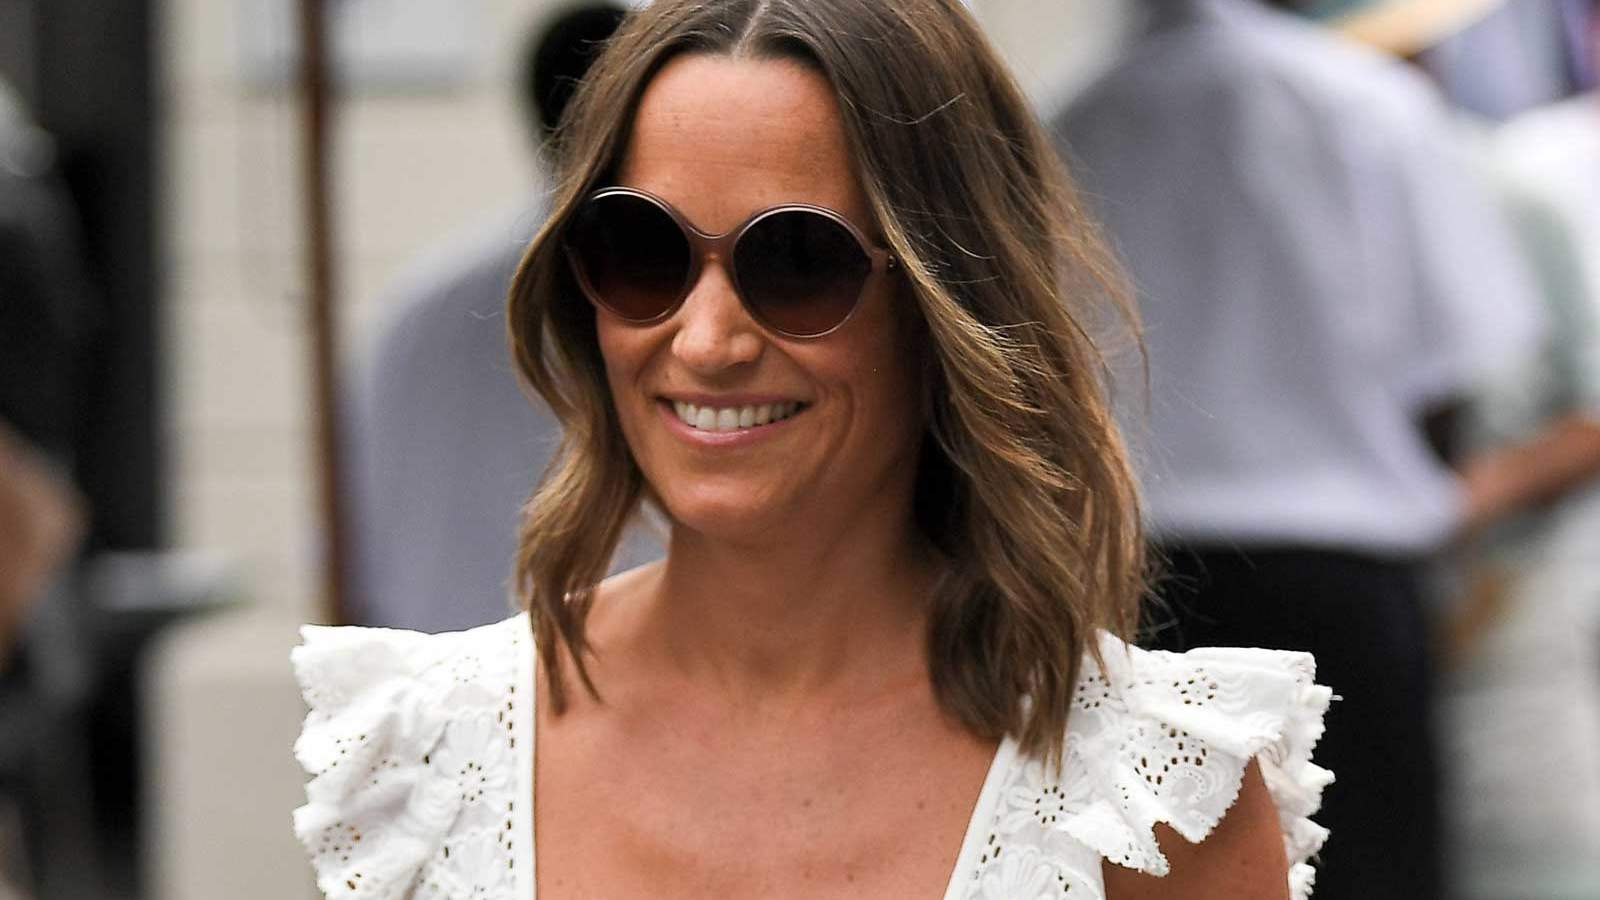 Pippa Middleton Opens Up About Entering Third Trimester as She Reveals Go-To Pregnancy Workout